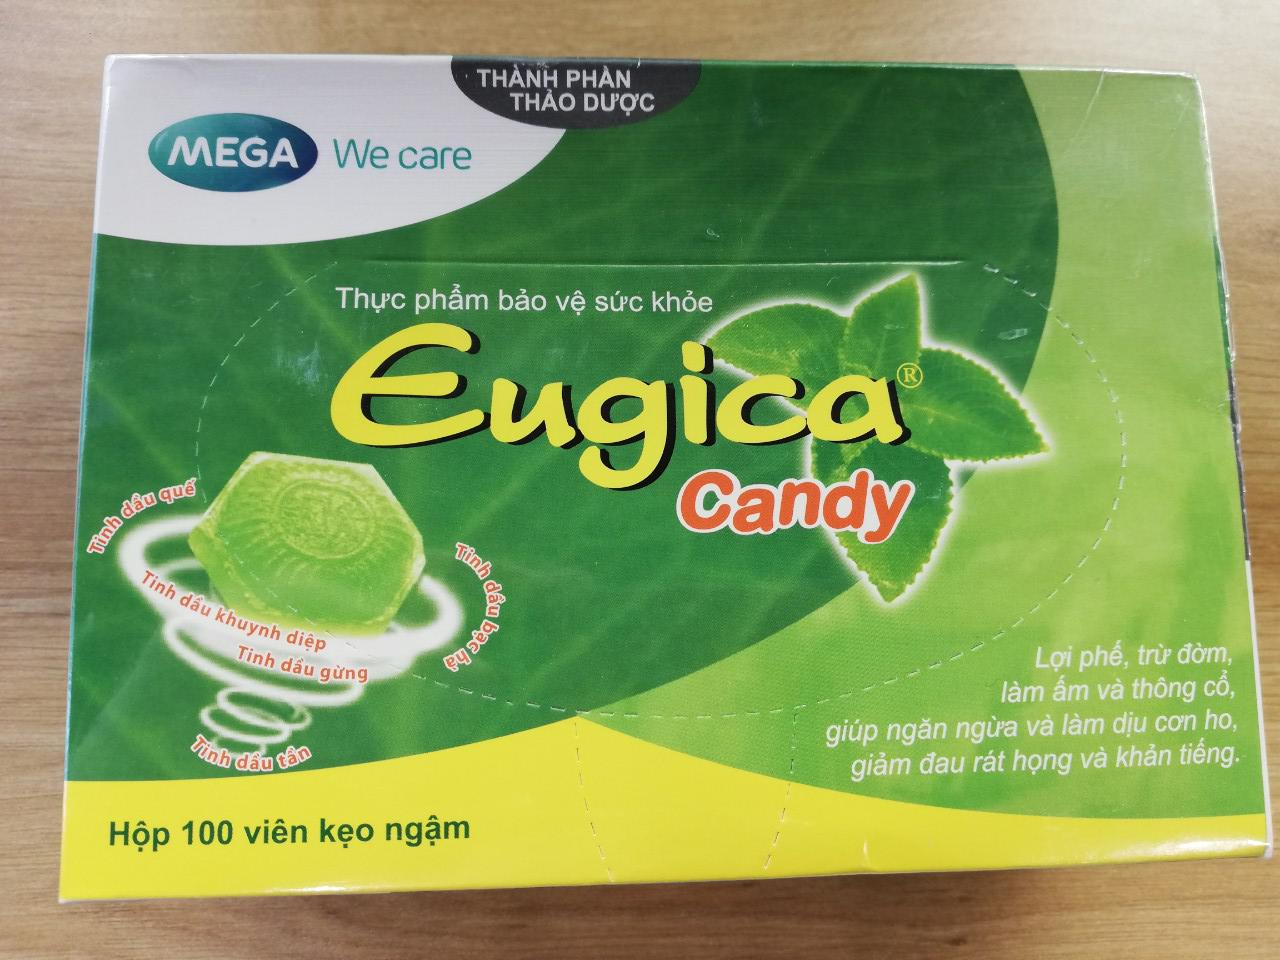 Kẹo ngậm Eugica Candy Mega We care